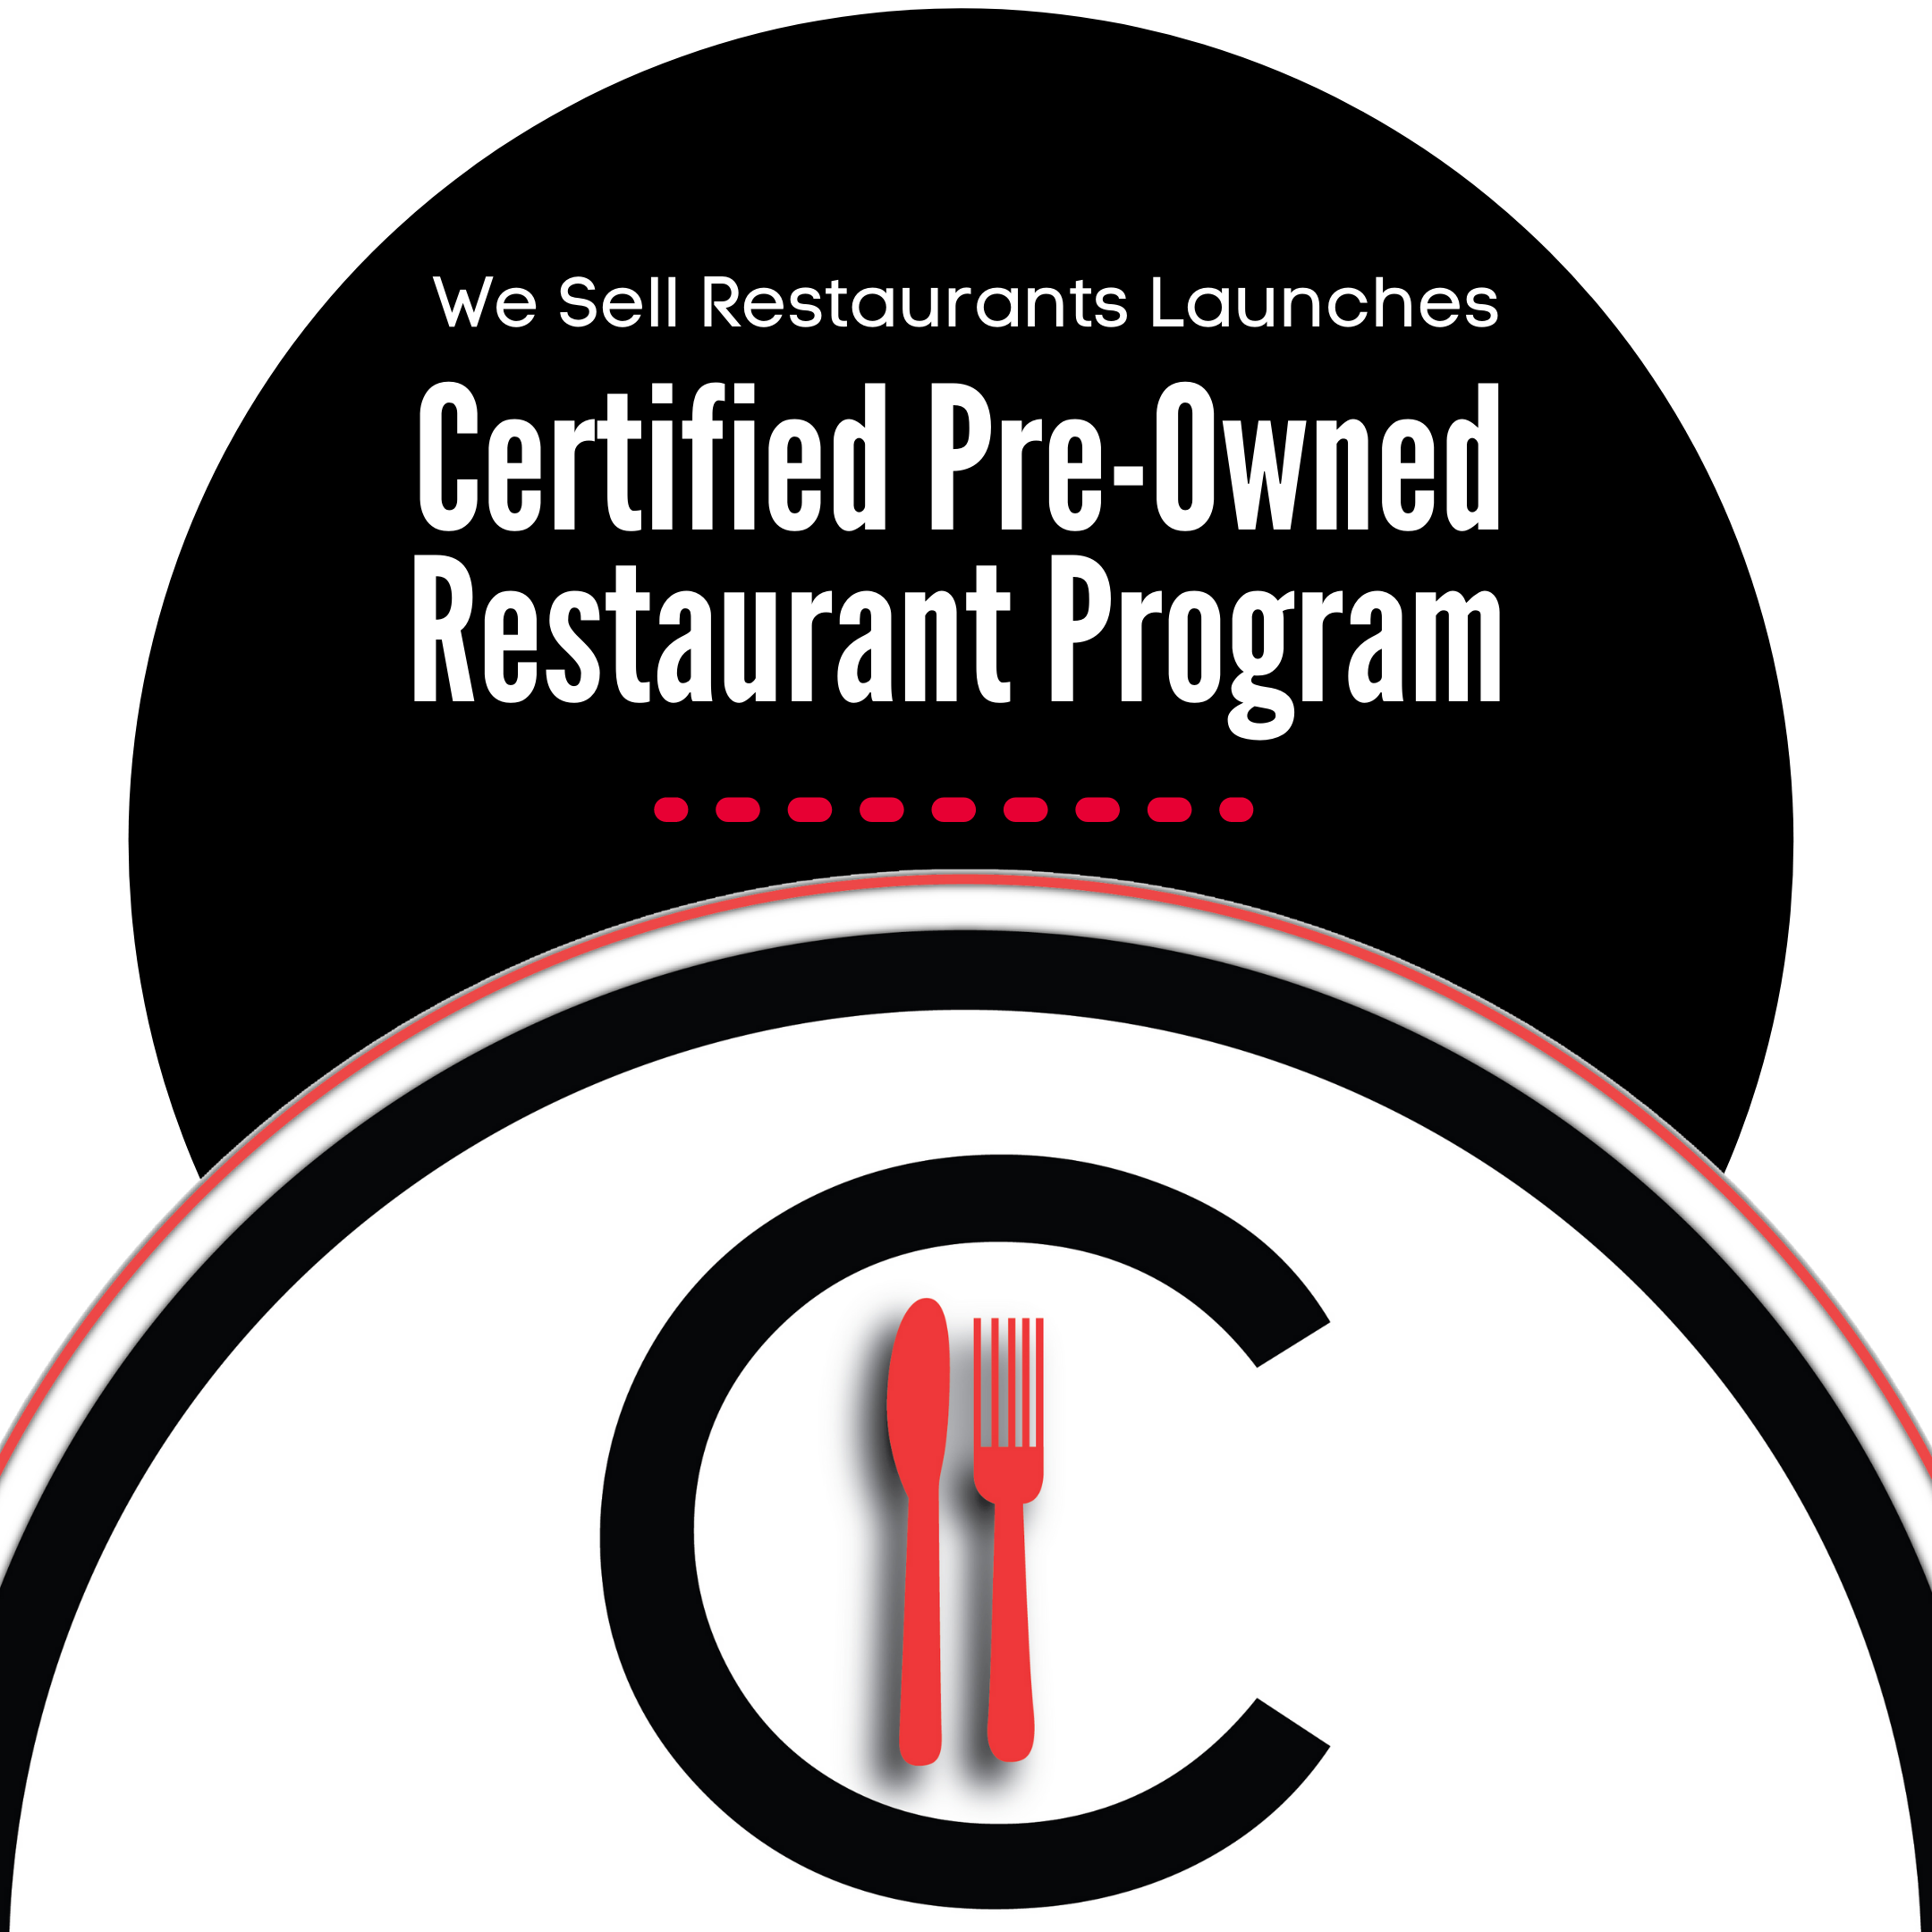 We Sell Restaurants Launches Certified Pre-Owned Restaurant™ Program